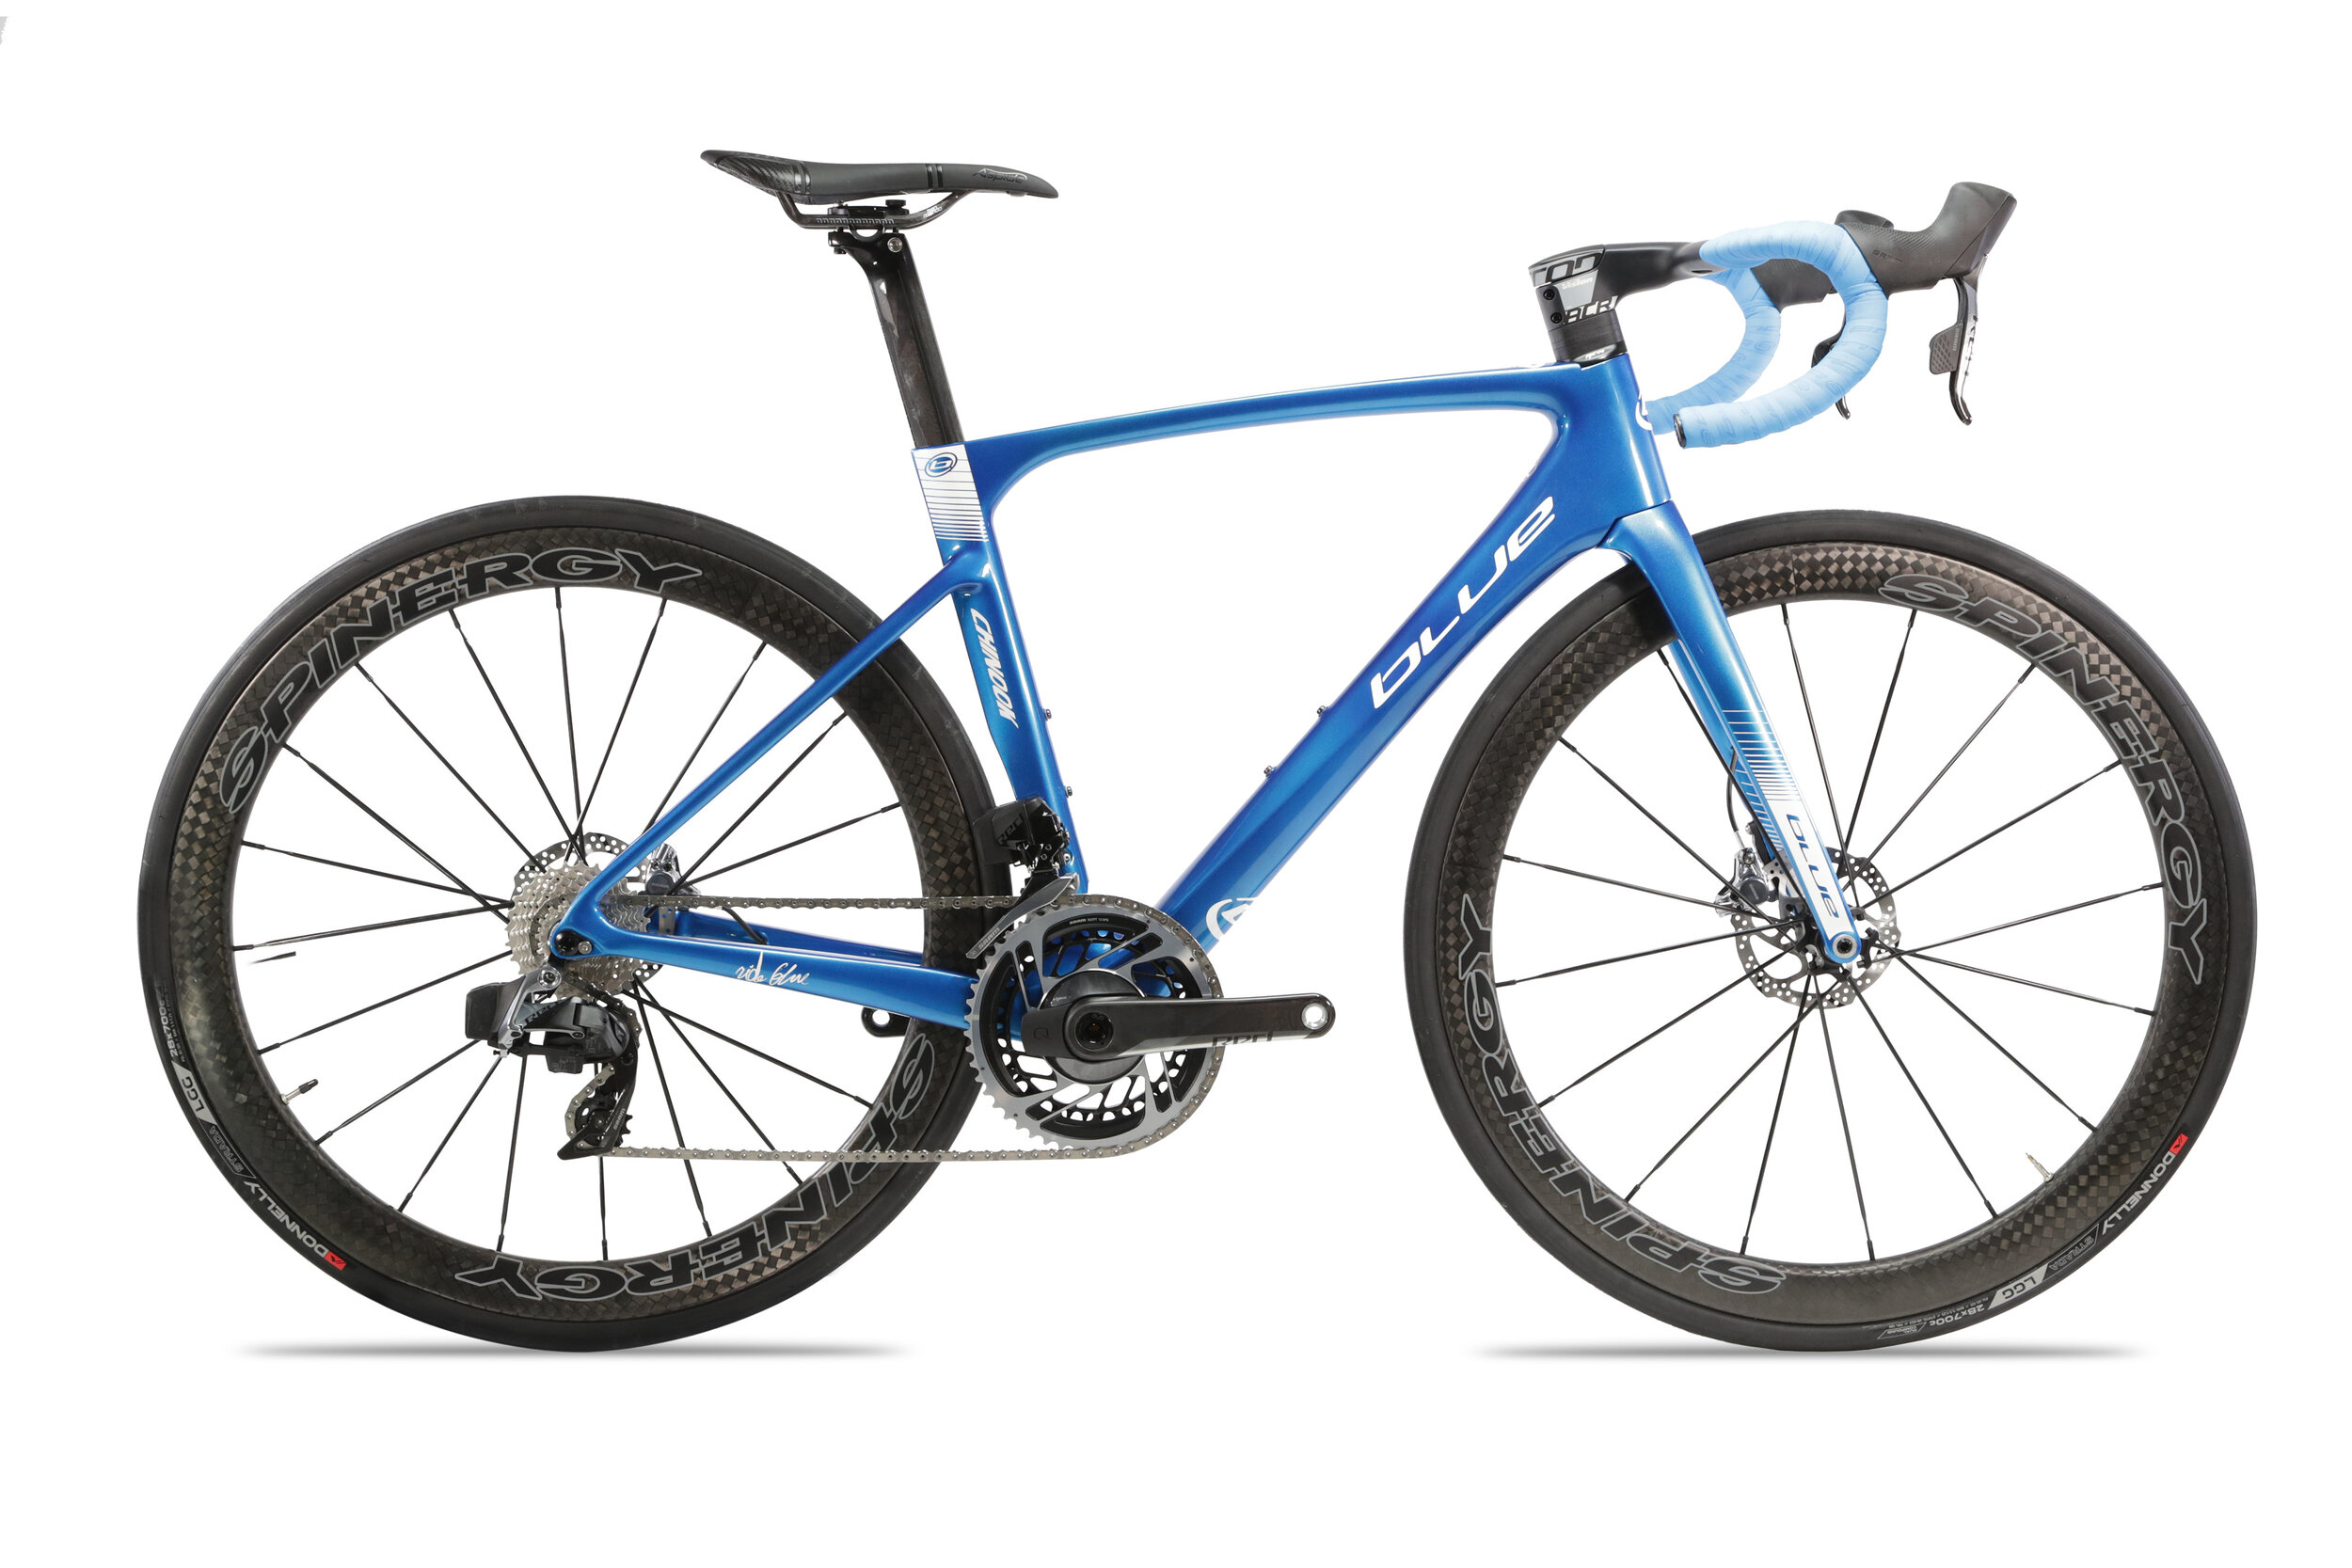 Chinook_Sideview_SRAM_Spinergy_Side Profile_web.jpg